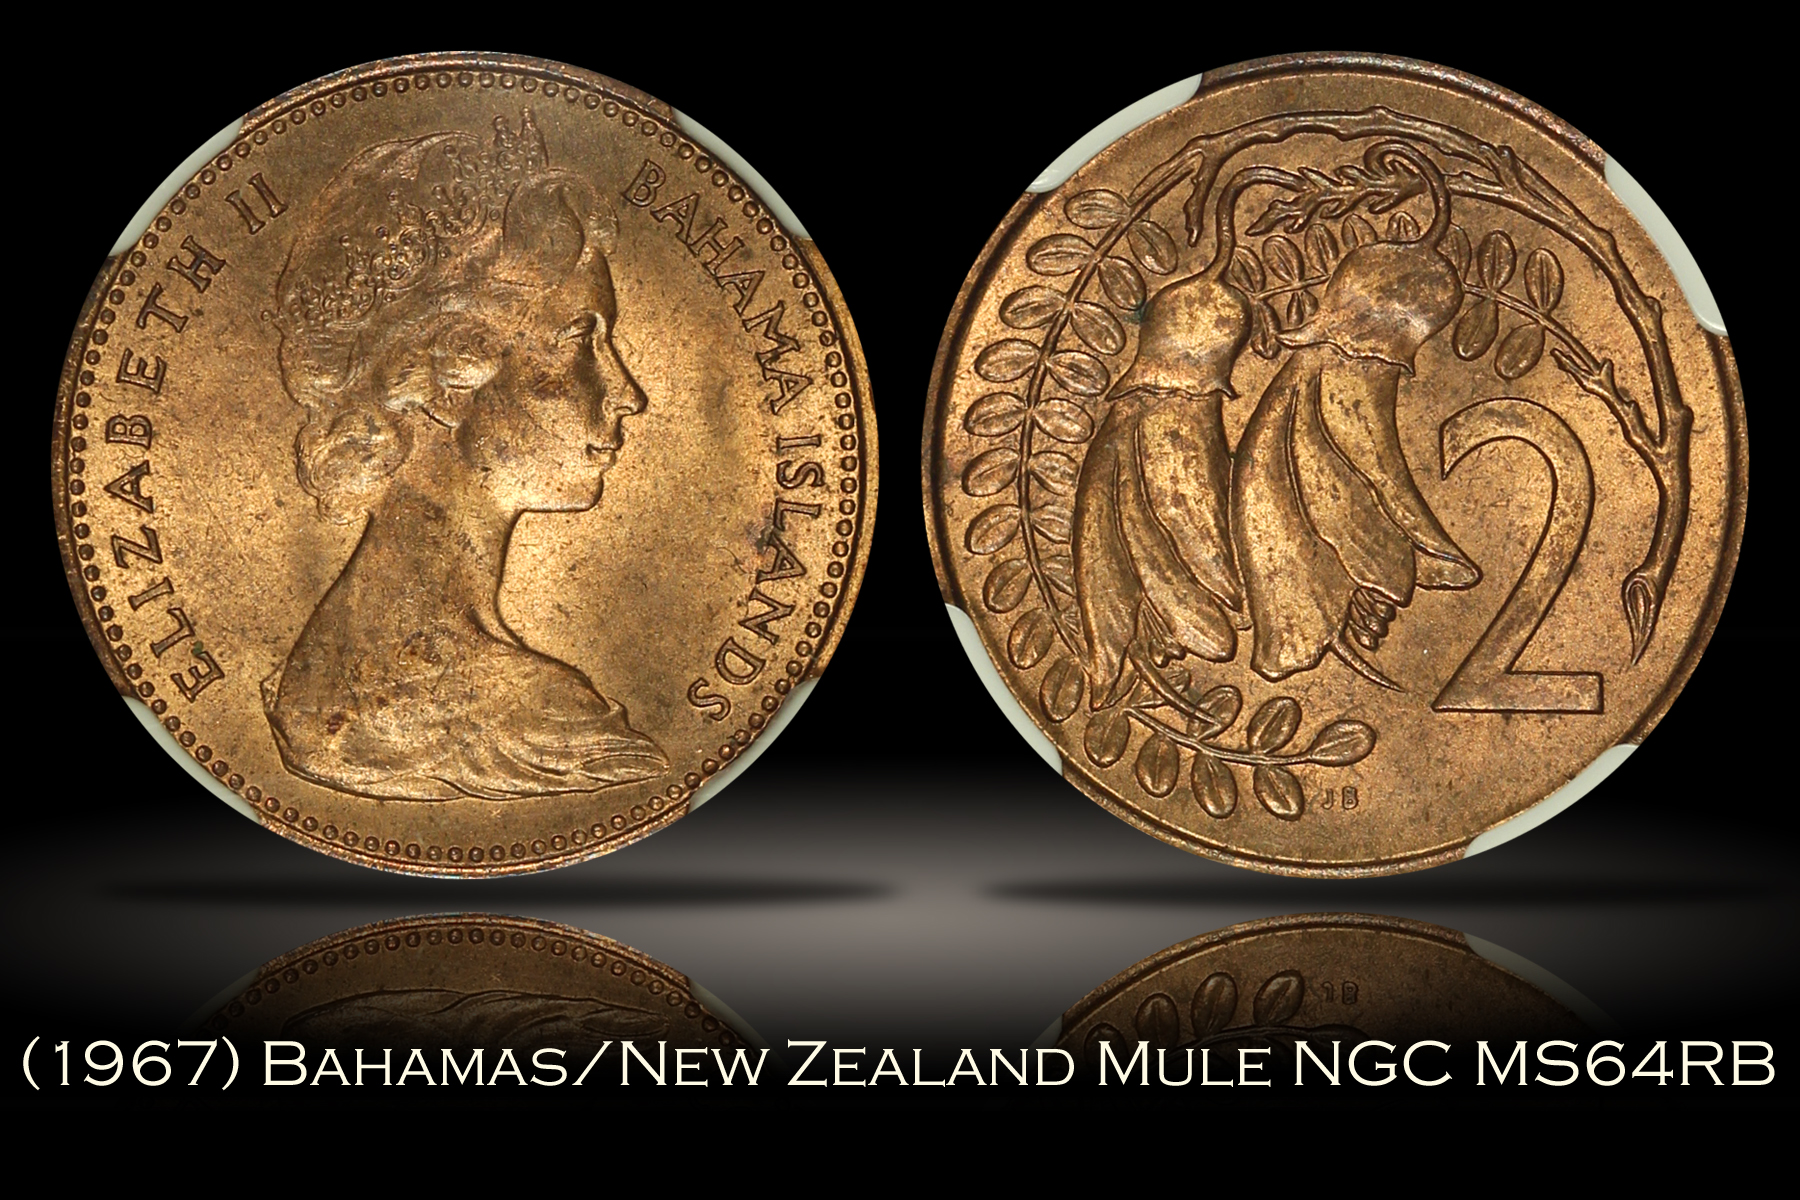 1967 Bahamas New Zealand 2 Cent Mule NGC MS64RB